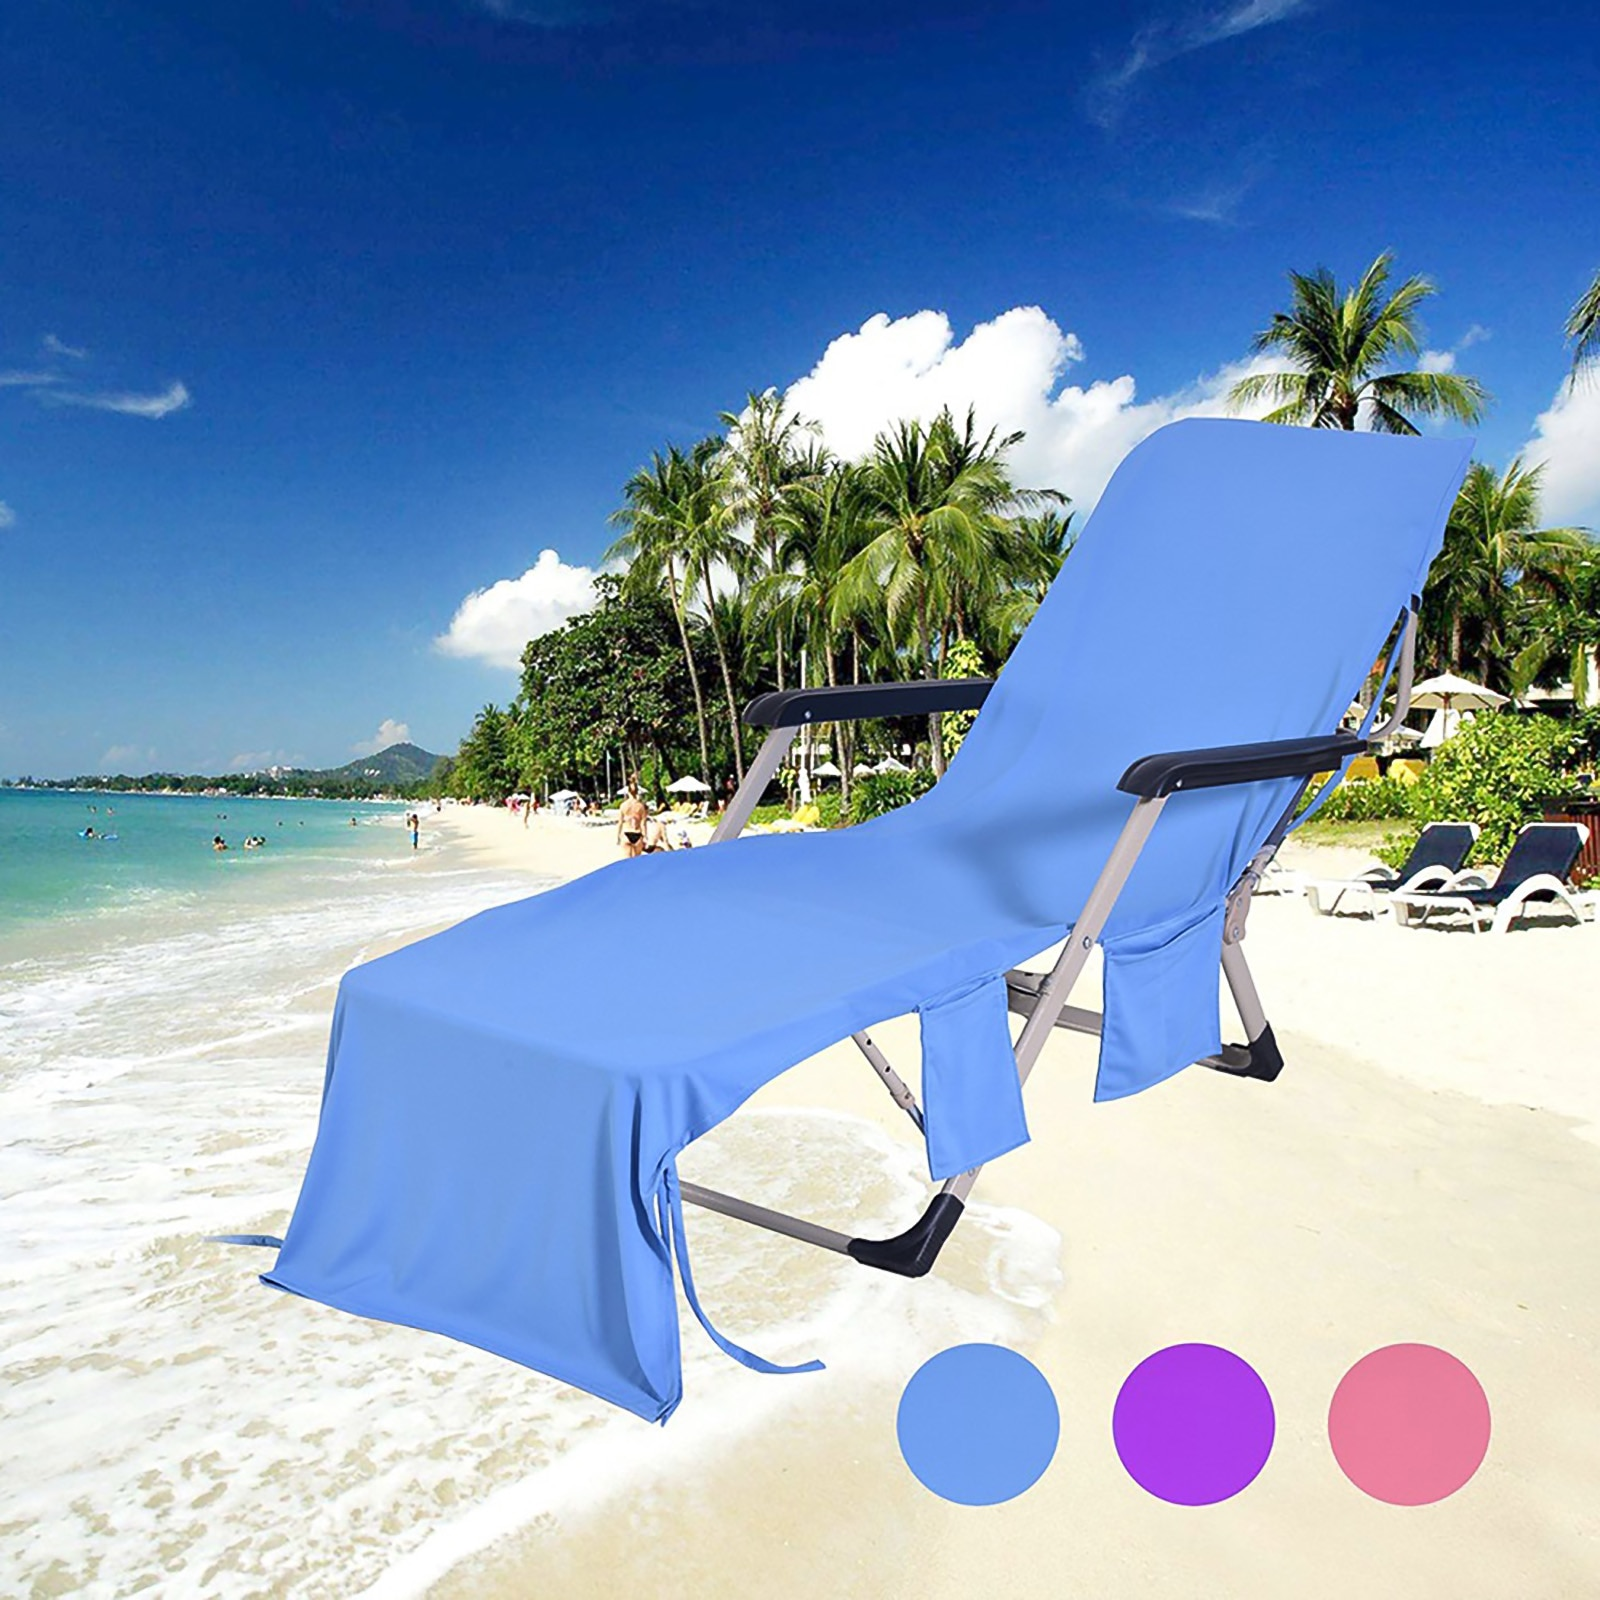 Sun Lounge Beach Chair Cover Towel Holiday Garden Swimming Pool Bath Towel With Pockets For Lazy Chair For Summer Pool Party